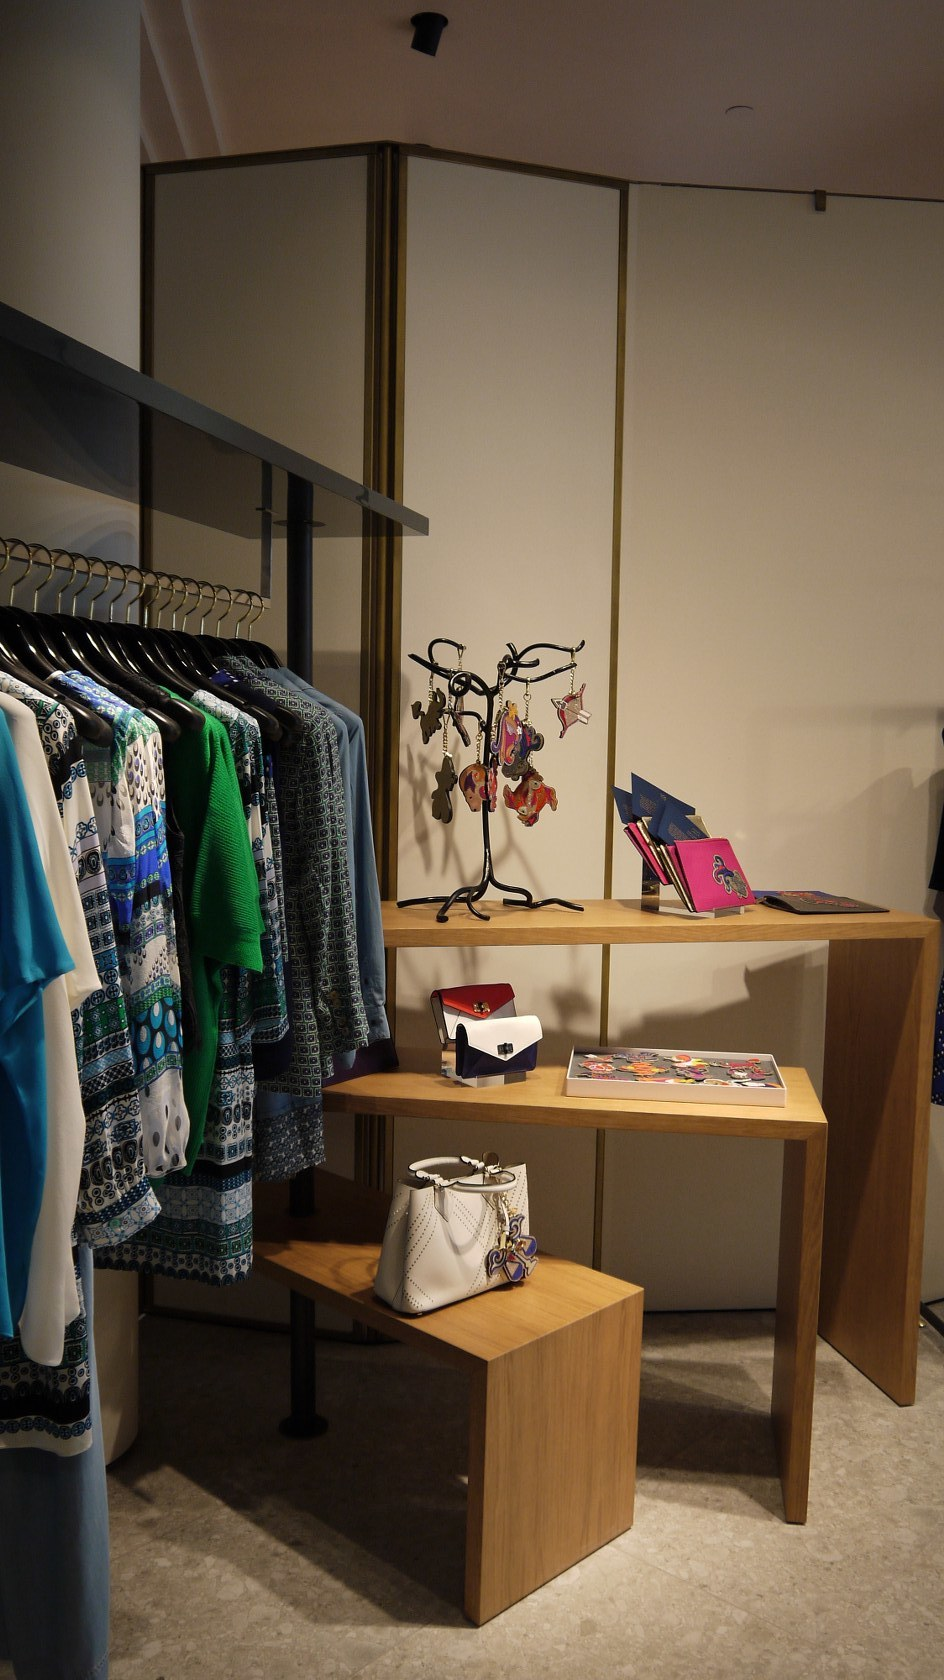 Display bench and hangers_1680x944.jpg